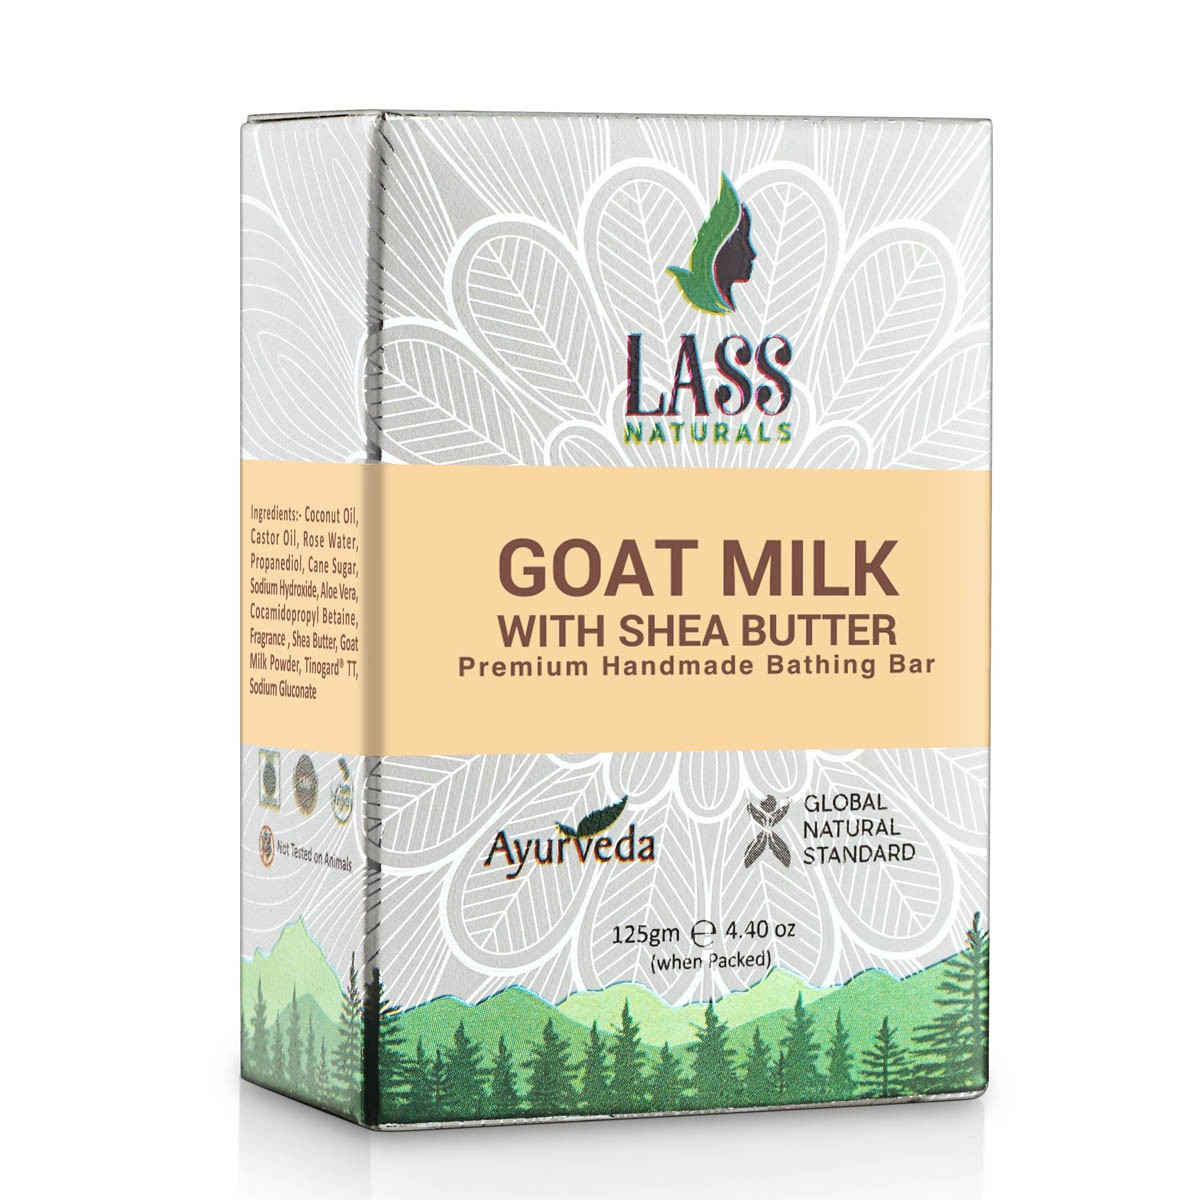 Goat Milk with Shea Butter Handmade Premium Bathing Soap